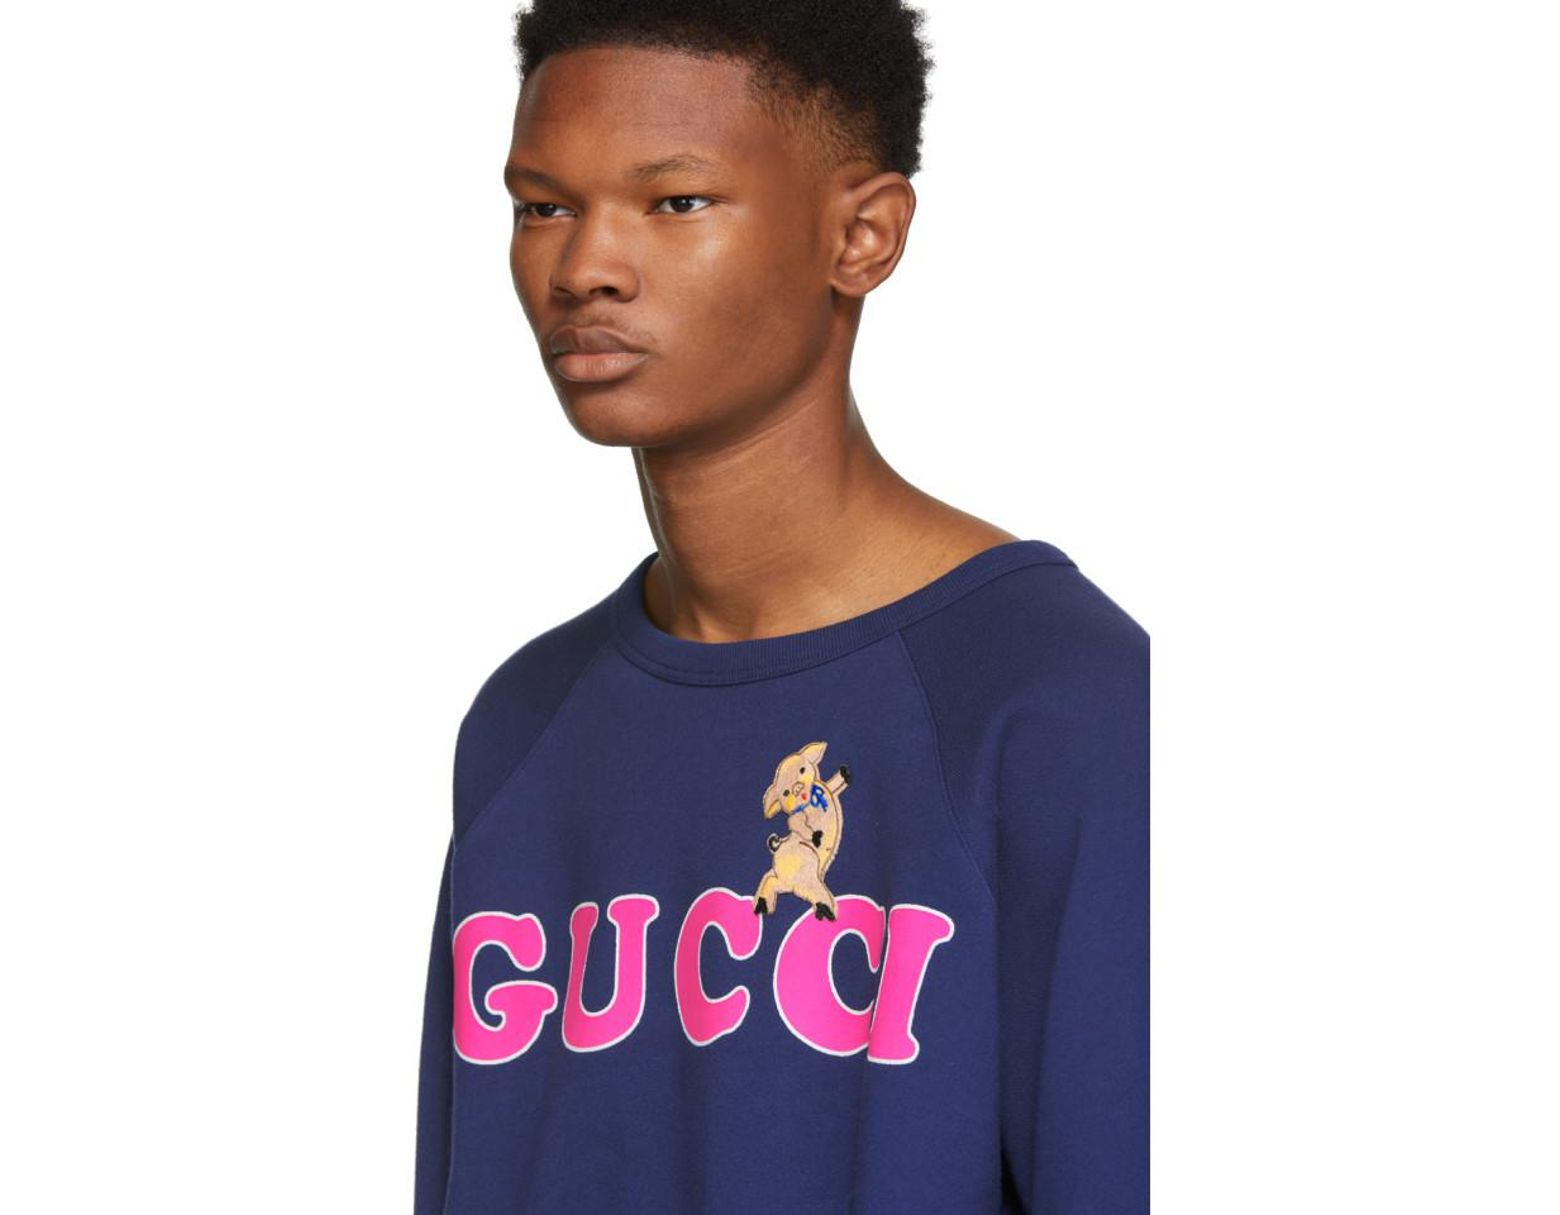 51658f2fed5 Lyst - Gucci Navy Pig Embroidery Sweatshirt in Blue for Men